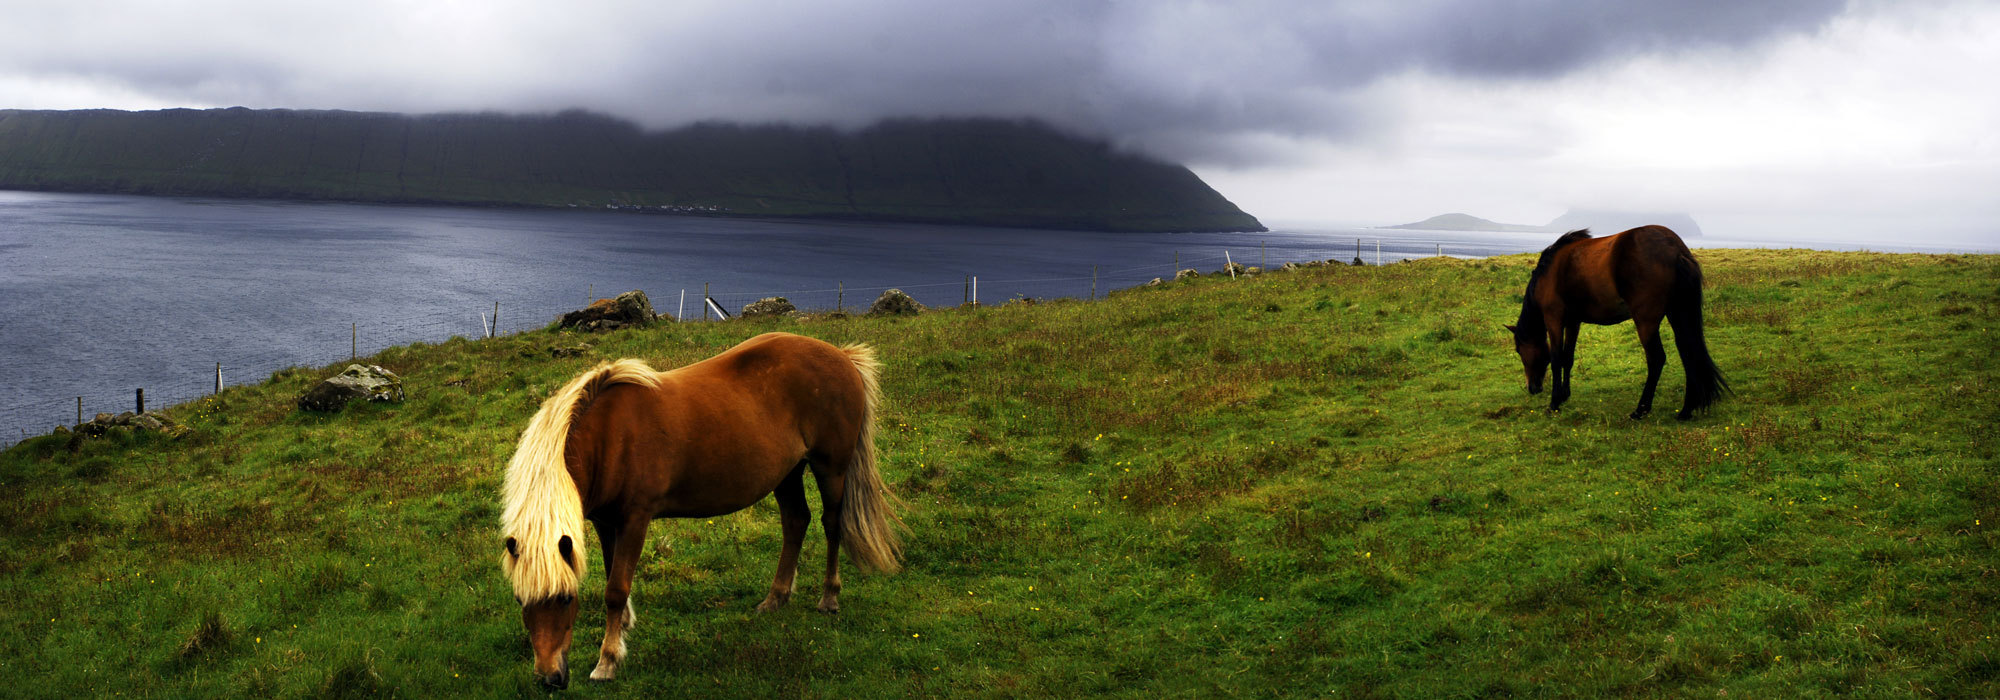 Horses eat grass in the Southern part of Streymoy Island of the Fare Islands. Icelandic horses are the common breed of horses in the Faroe Islands.